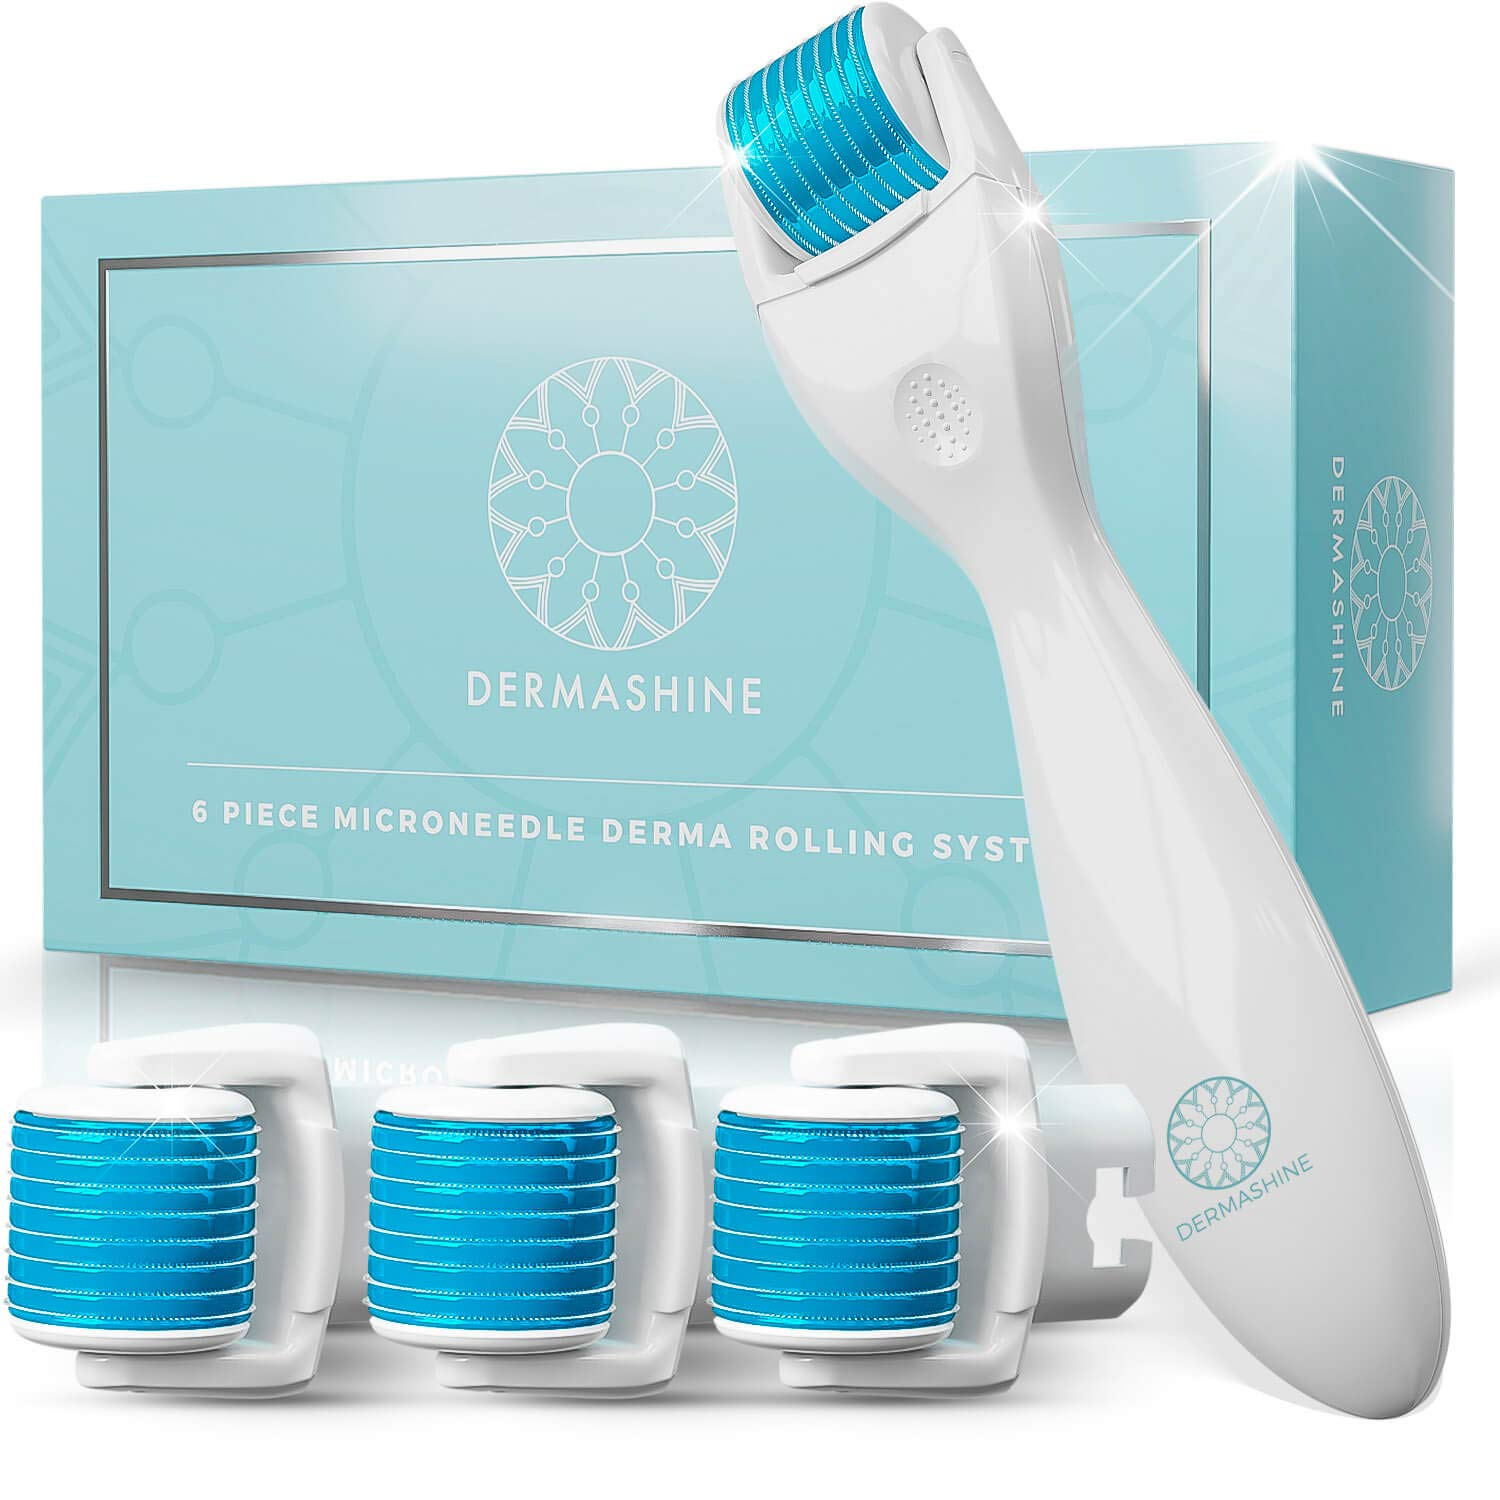 DermaShine Derma Roller 6 Piece Kit for Face Body Microdermabrasion 0.25mm Micro Needling Skin Care Set 4 Replacement Heads, 600 Titanium Needles Microneedle Roller Derma Planing Tool